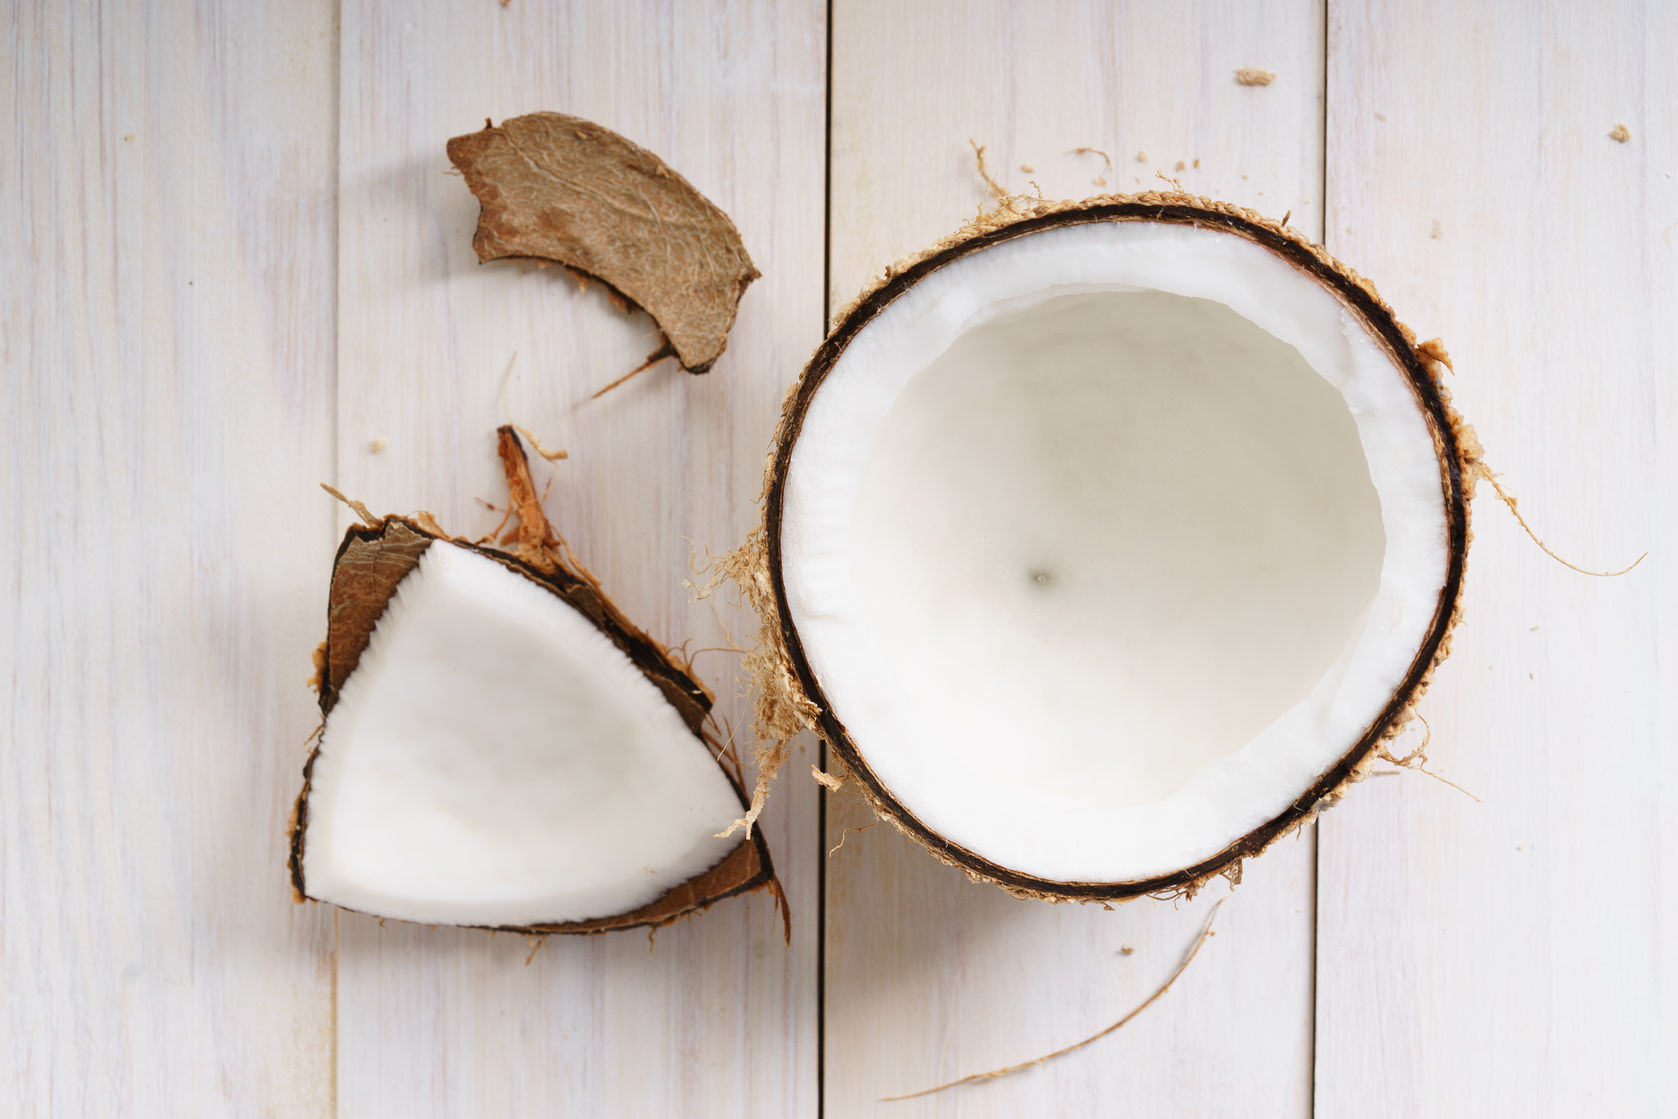 56624076 – coconut with shell on white wooden background